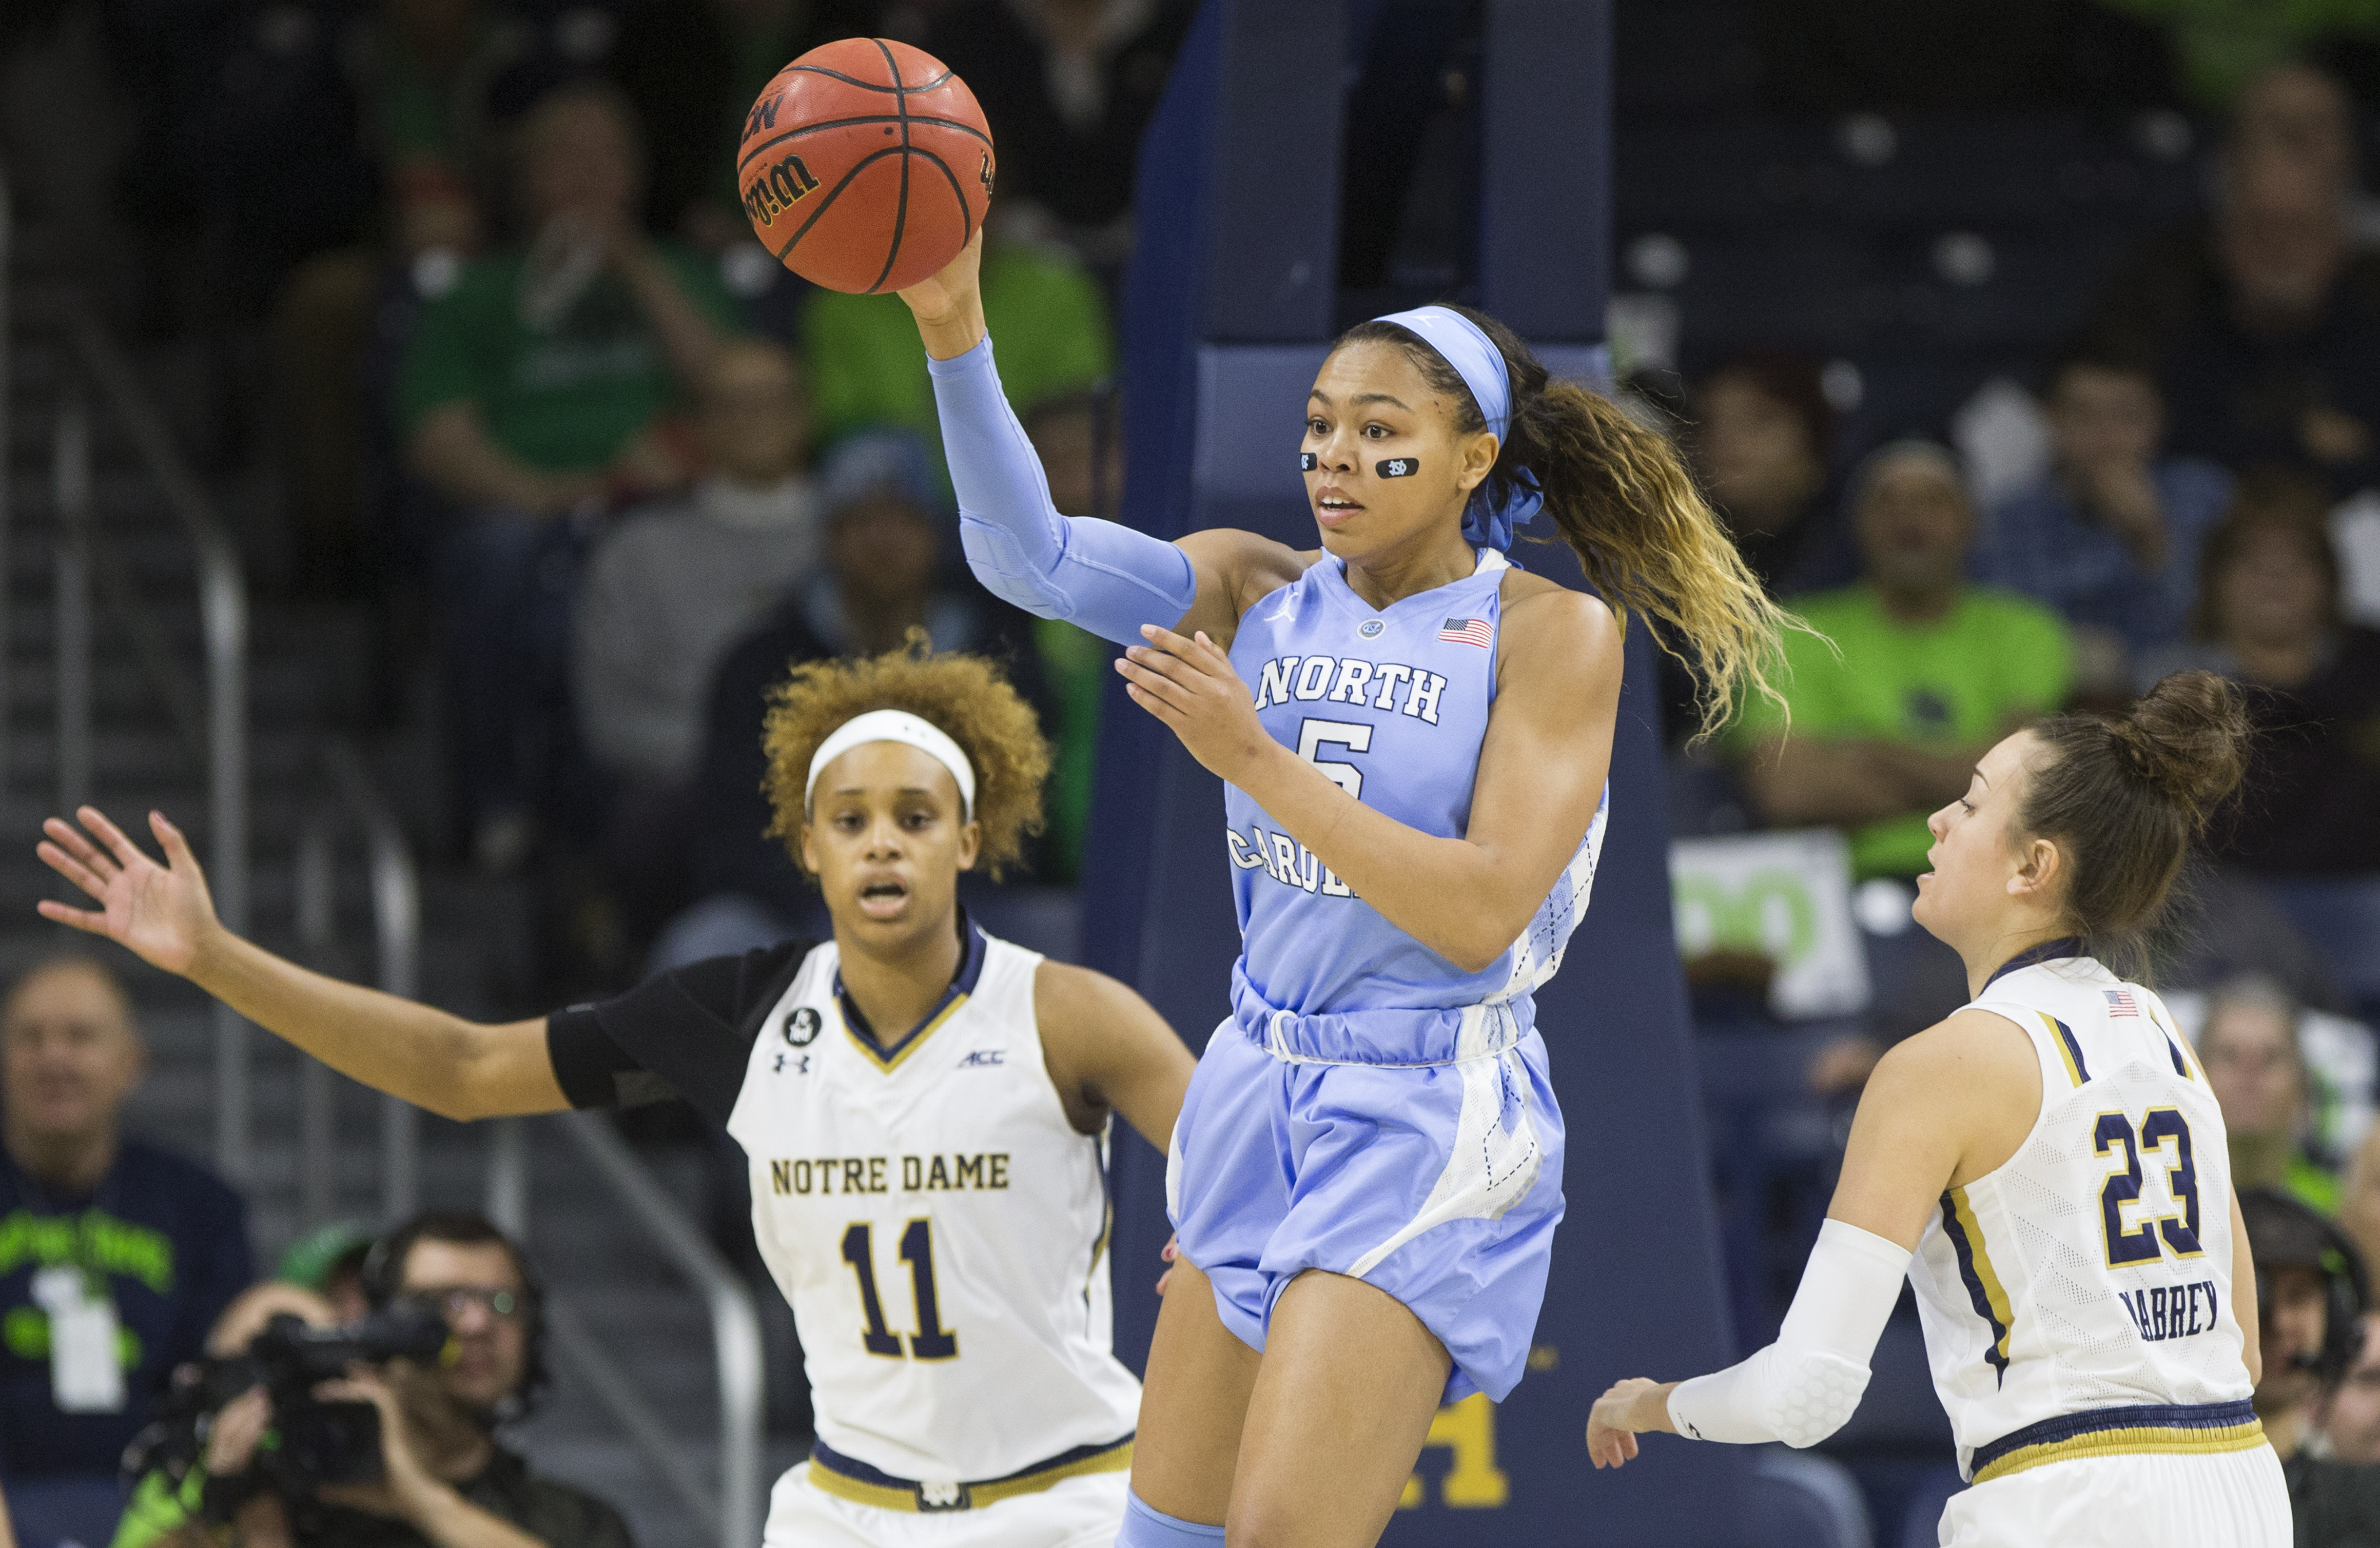 North Carolinas Stephanie Watts (5) passes the ball next to Notre Dames Brianna Turner (11) and Michaela Mabrey (23) during the first half of an NCAA college basketball game on Sunday, Jan. 10, 2016, in South Bend, Ind. (AP Photo/Robert Franklin)